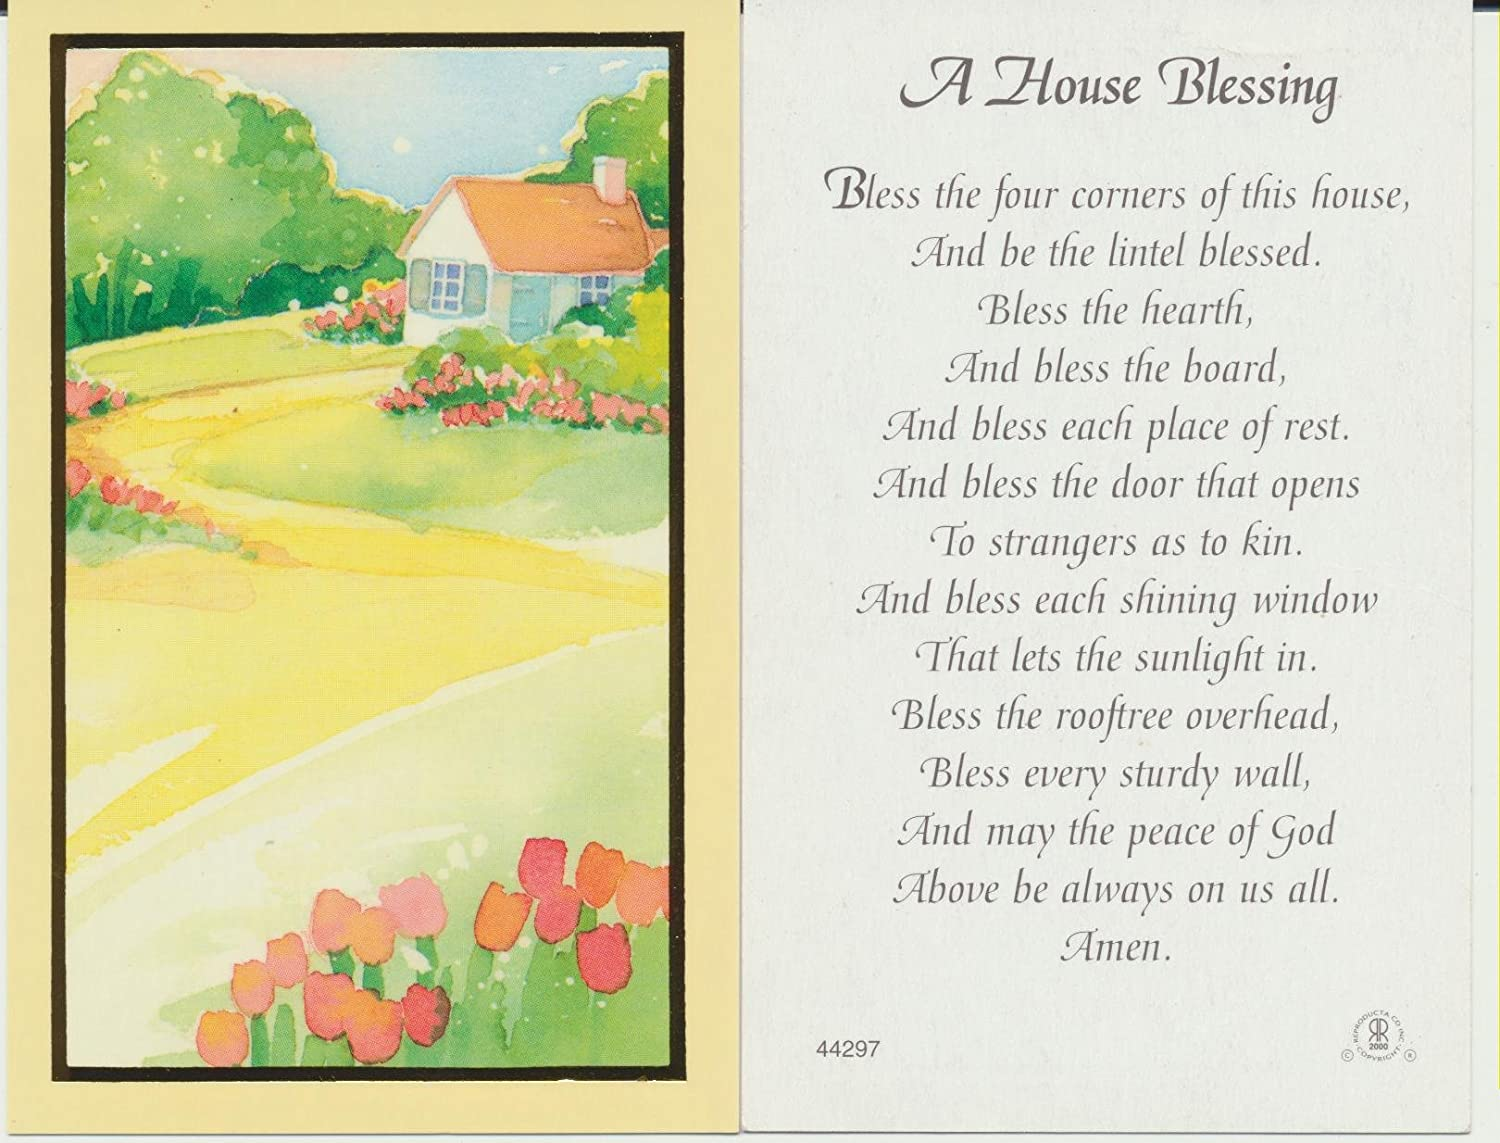 House Blessing Greetings Images - greetings card design simple